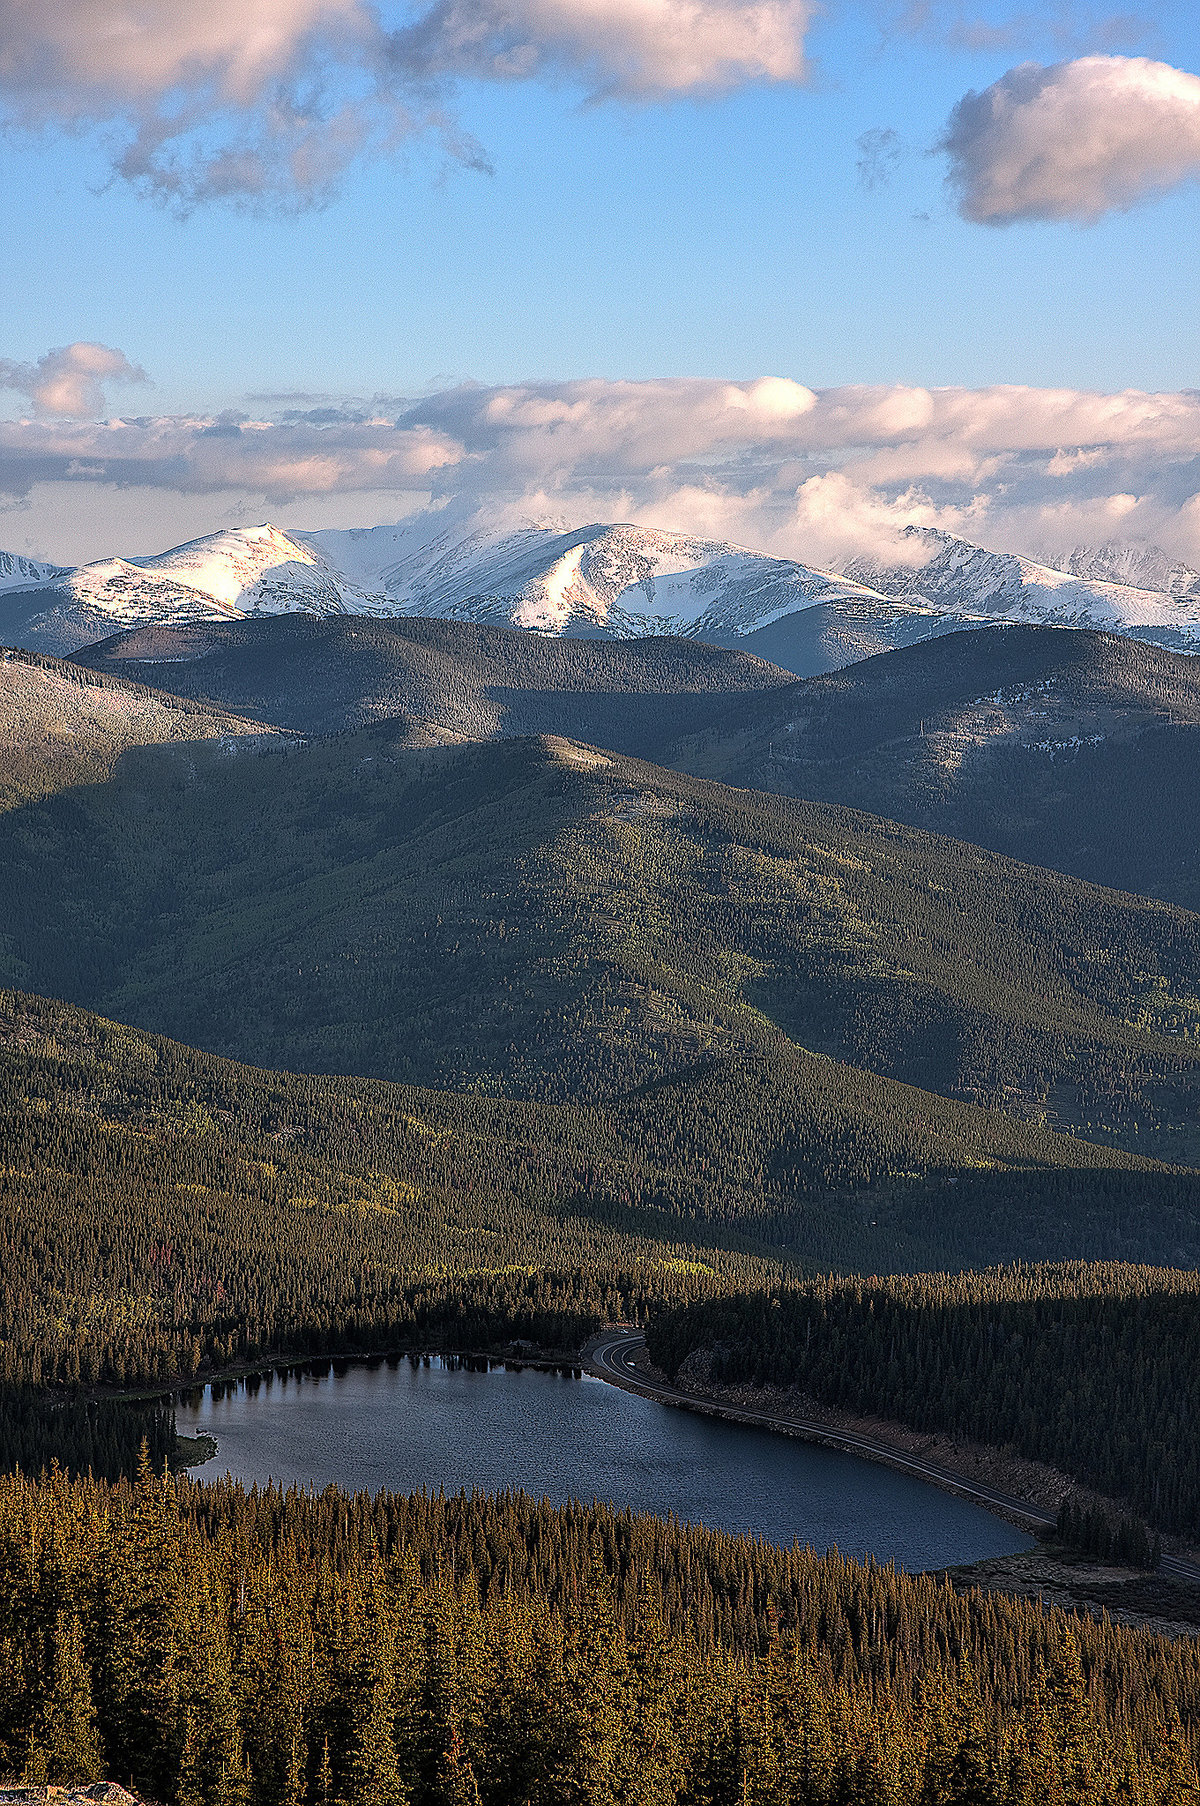 echo lake as viewed from mt evans in colorado